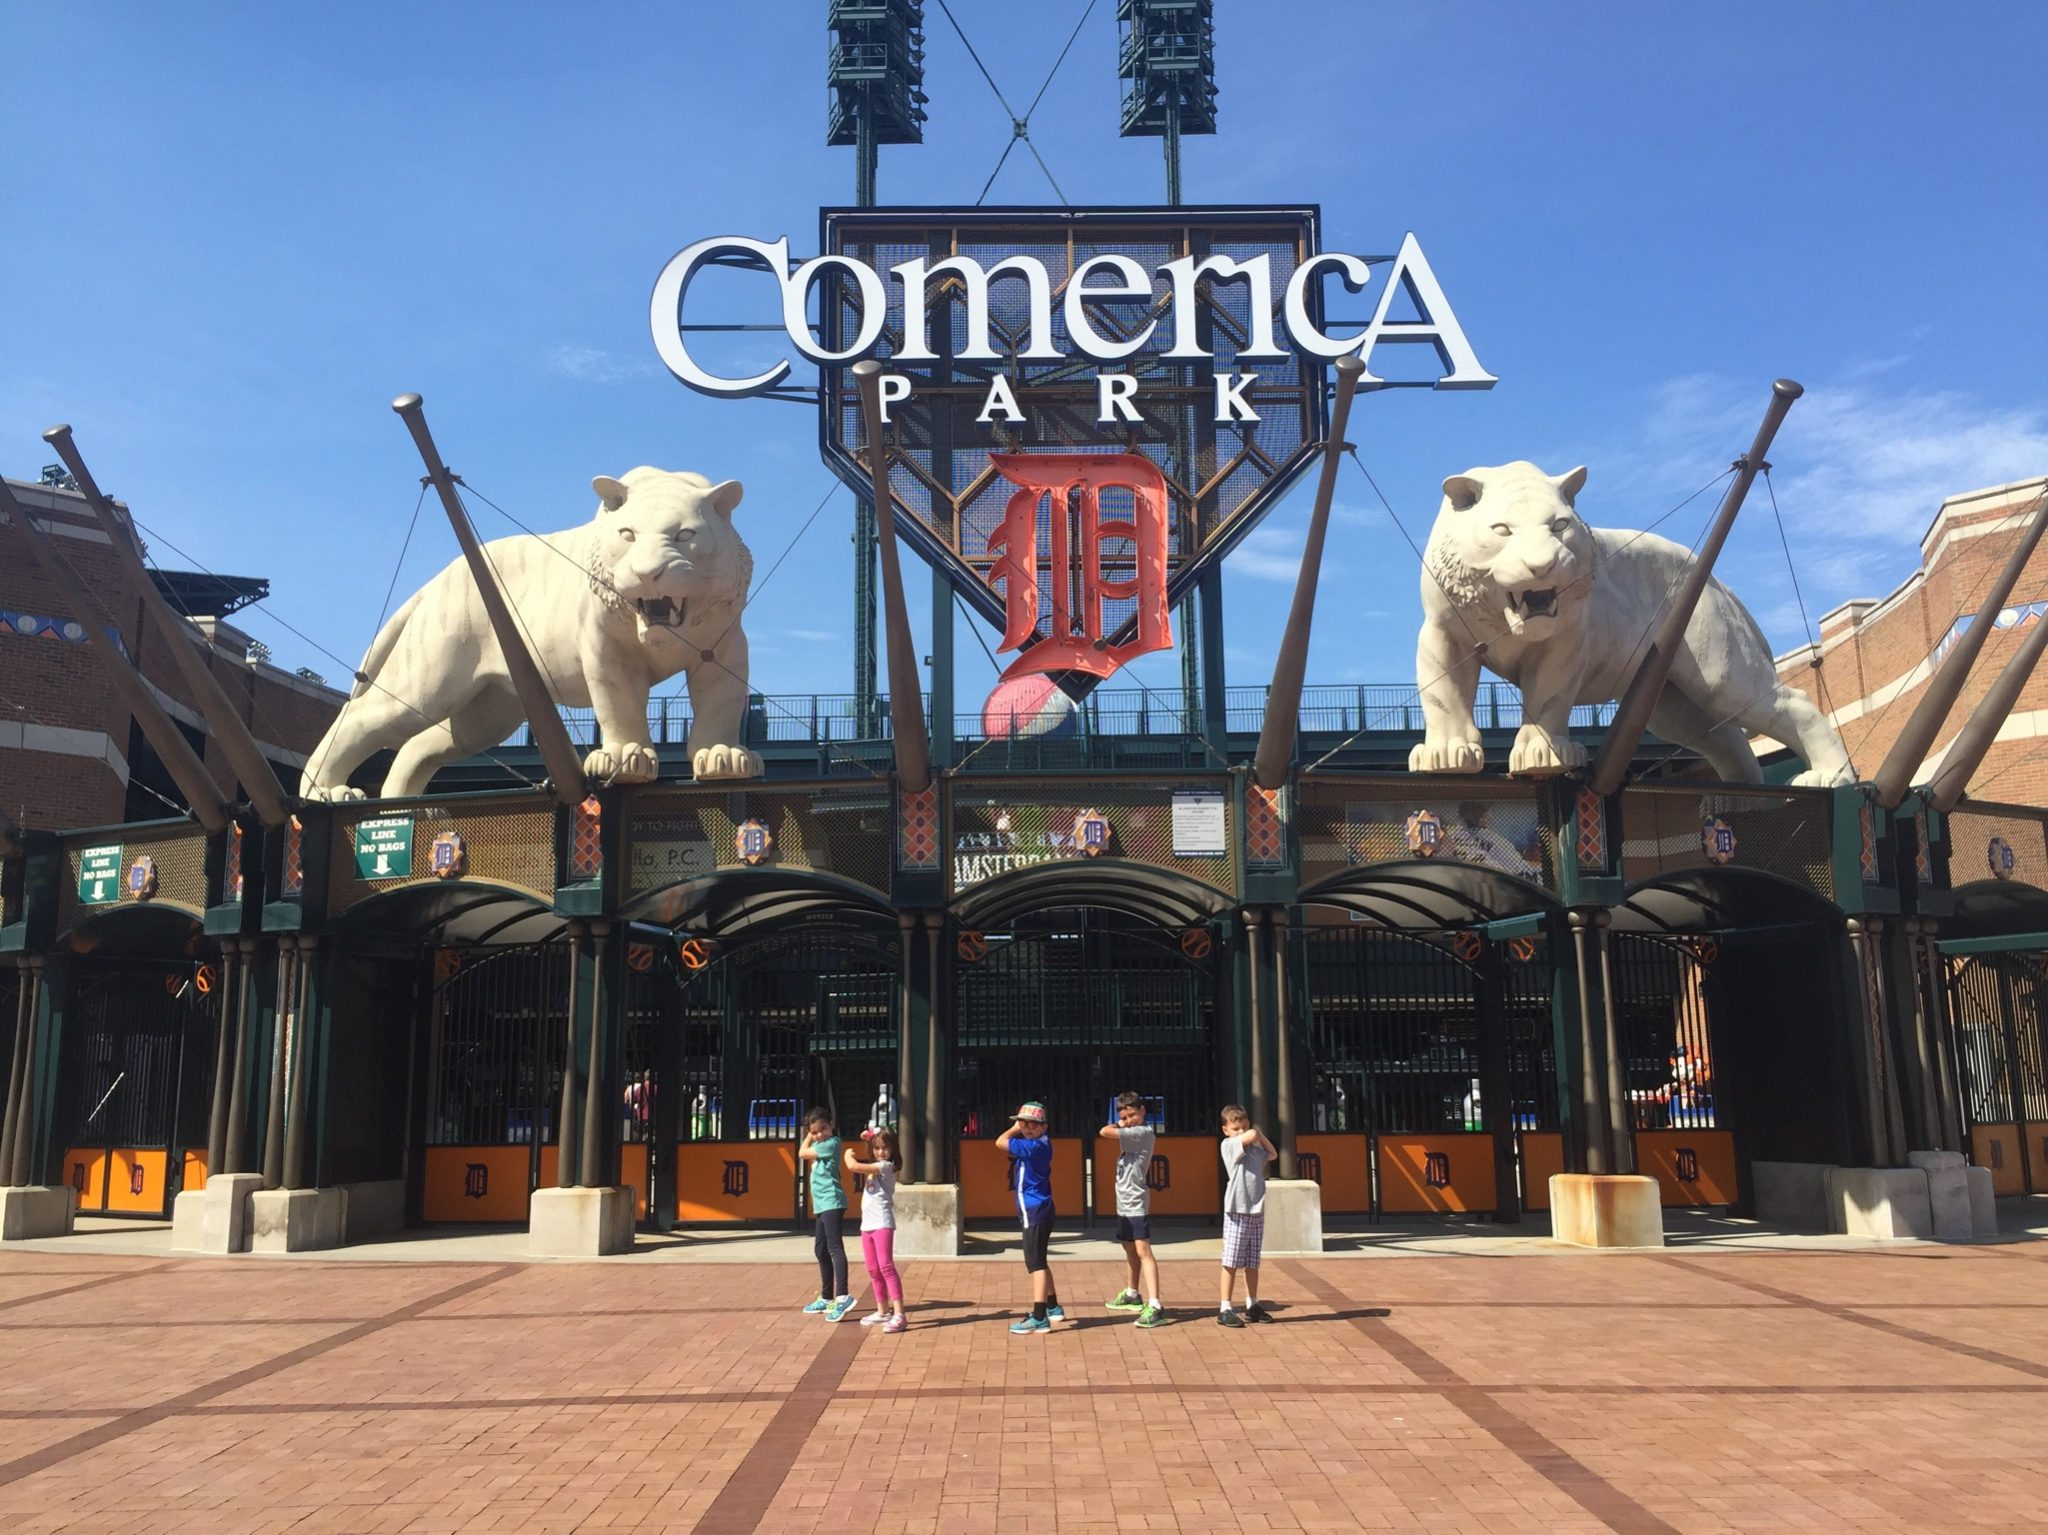 michigan with kids Comerica